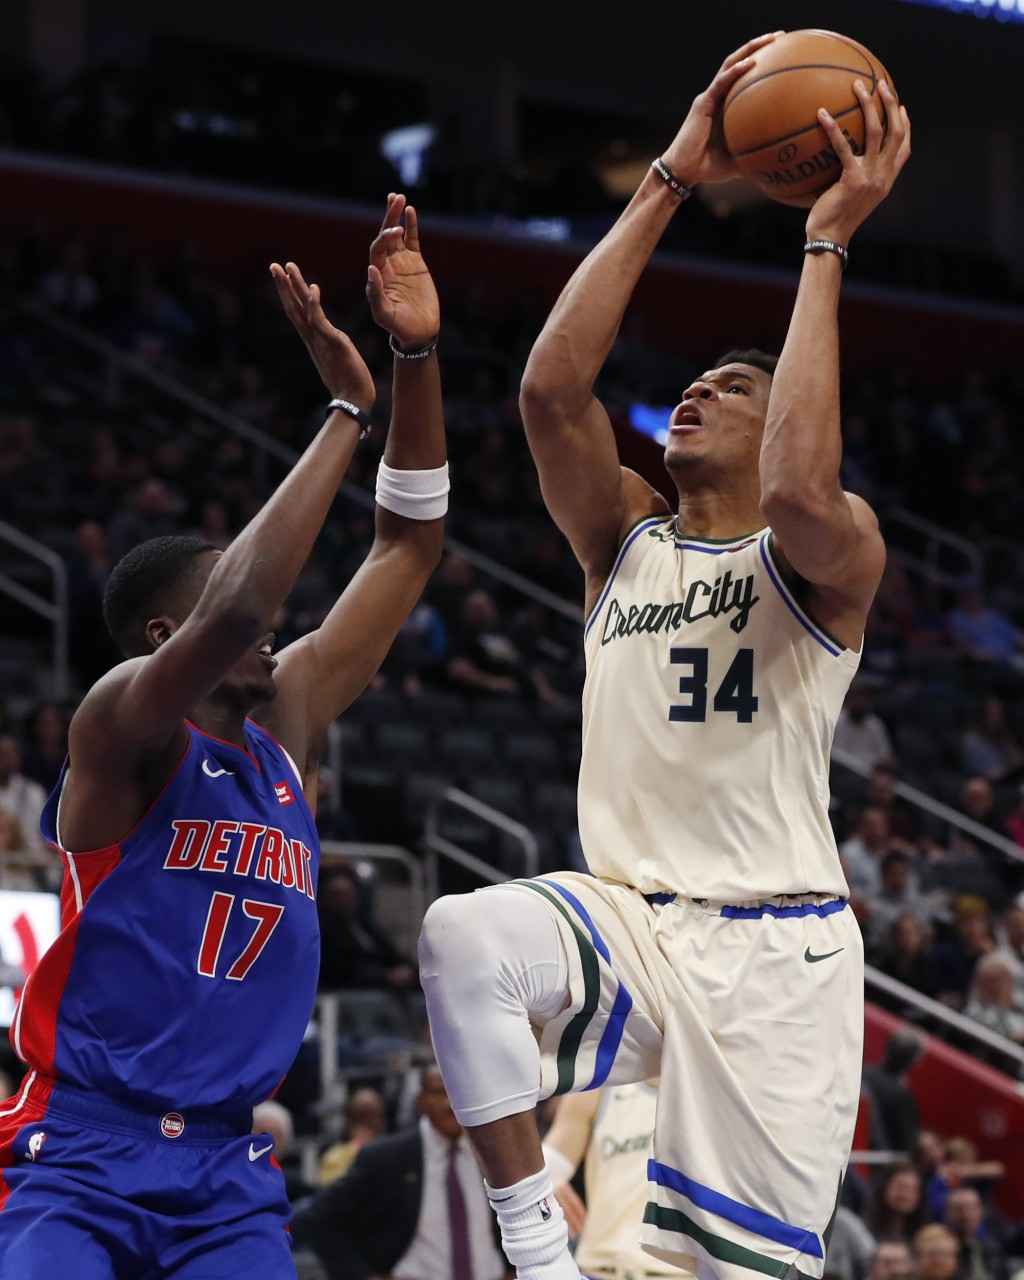 Milwaukee Bucks forward Giannis Antetokounmpo (34) attempts a layup as Detroit Pistons guard Tony Snell (17) defends during the first half of an NBA b...